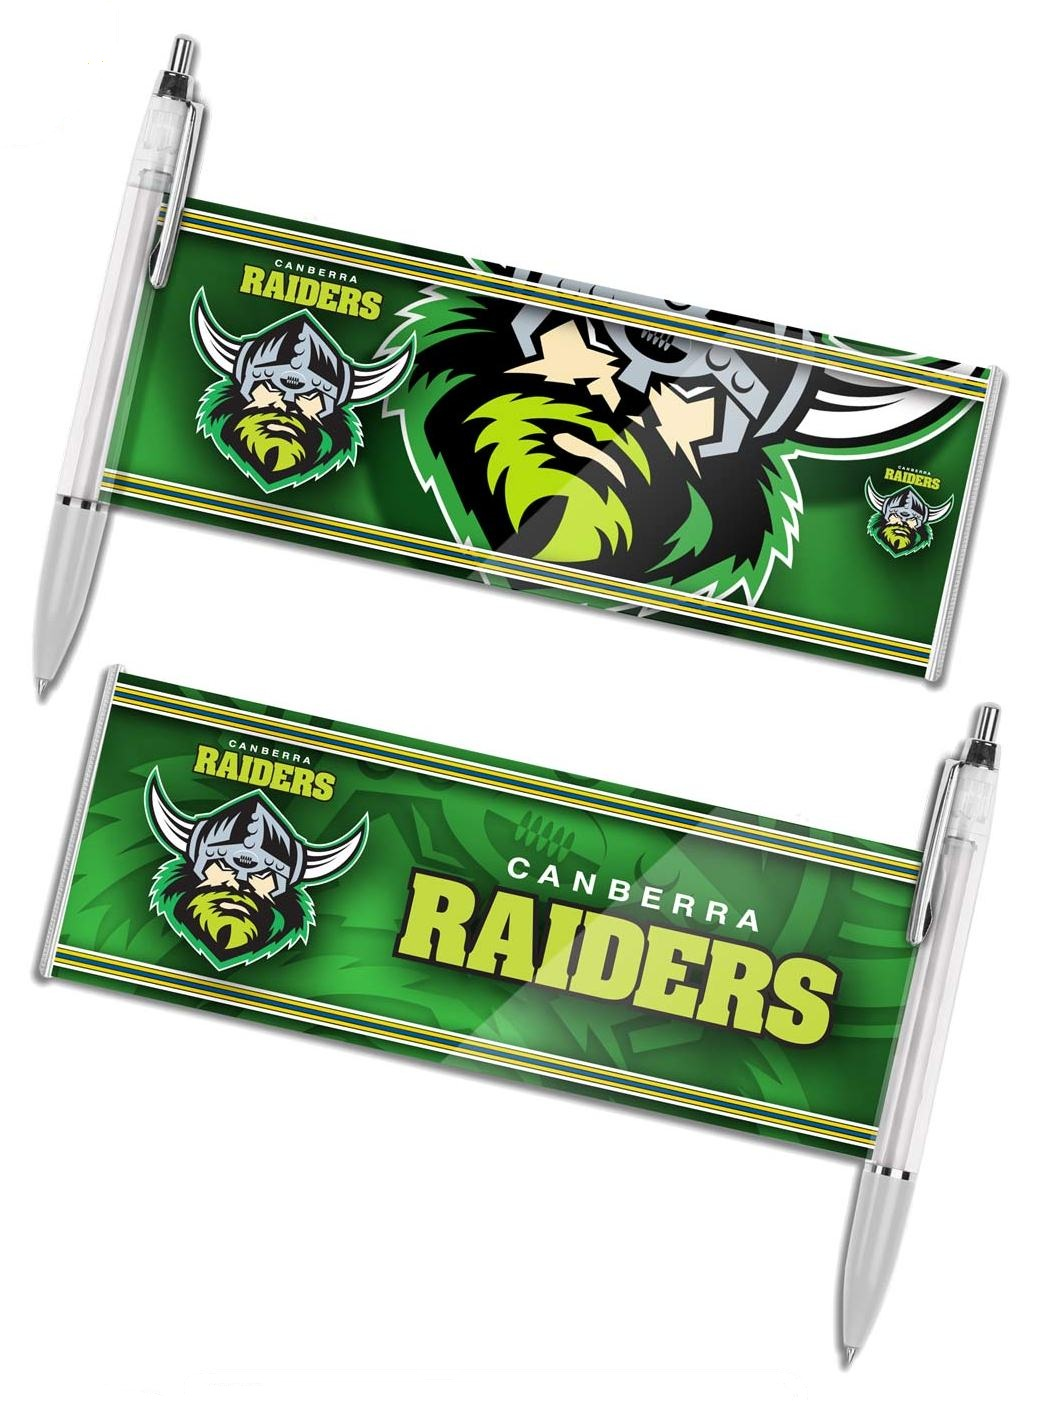 Canberra-Raiders-NRL-Team-Pull-Out-Banner-Pen